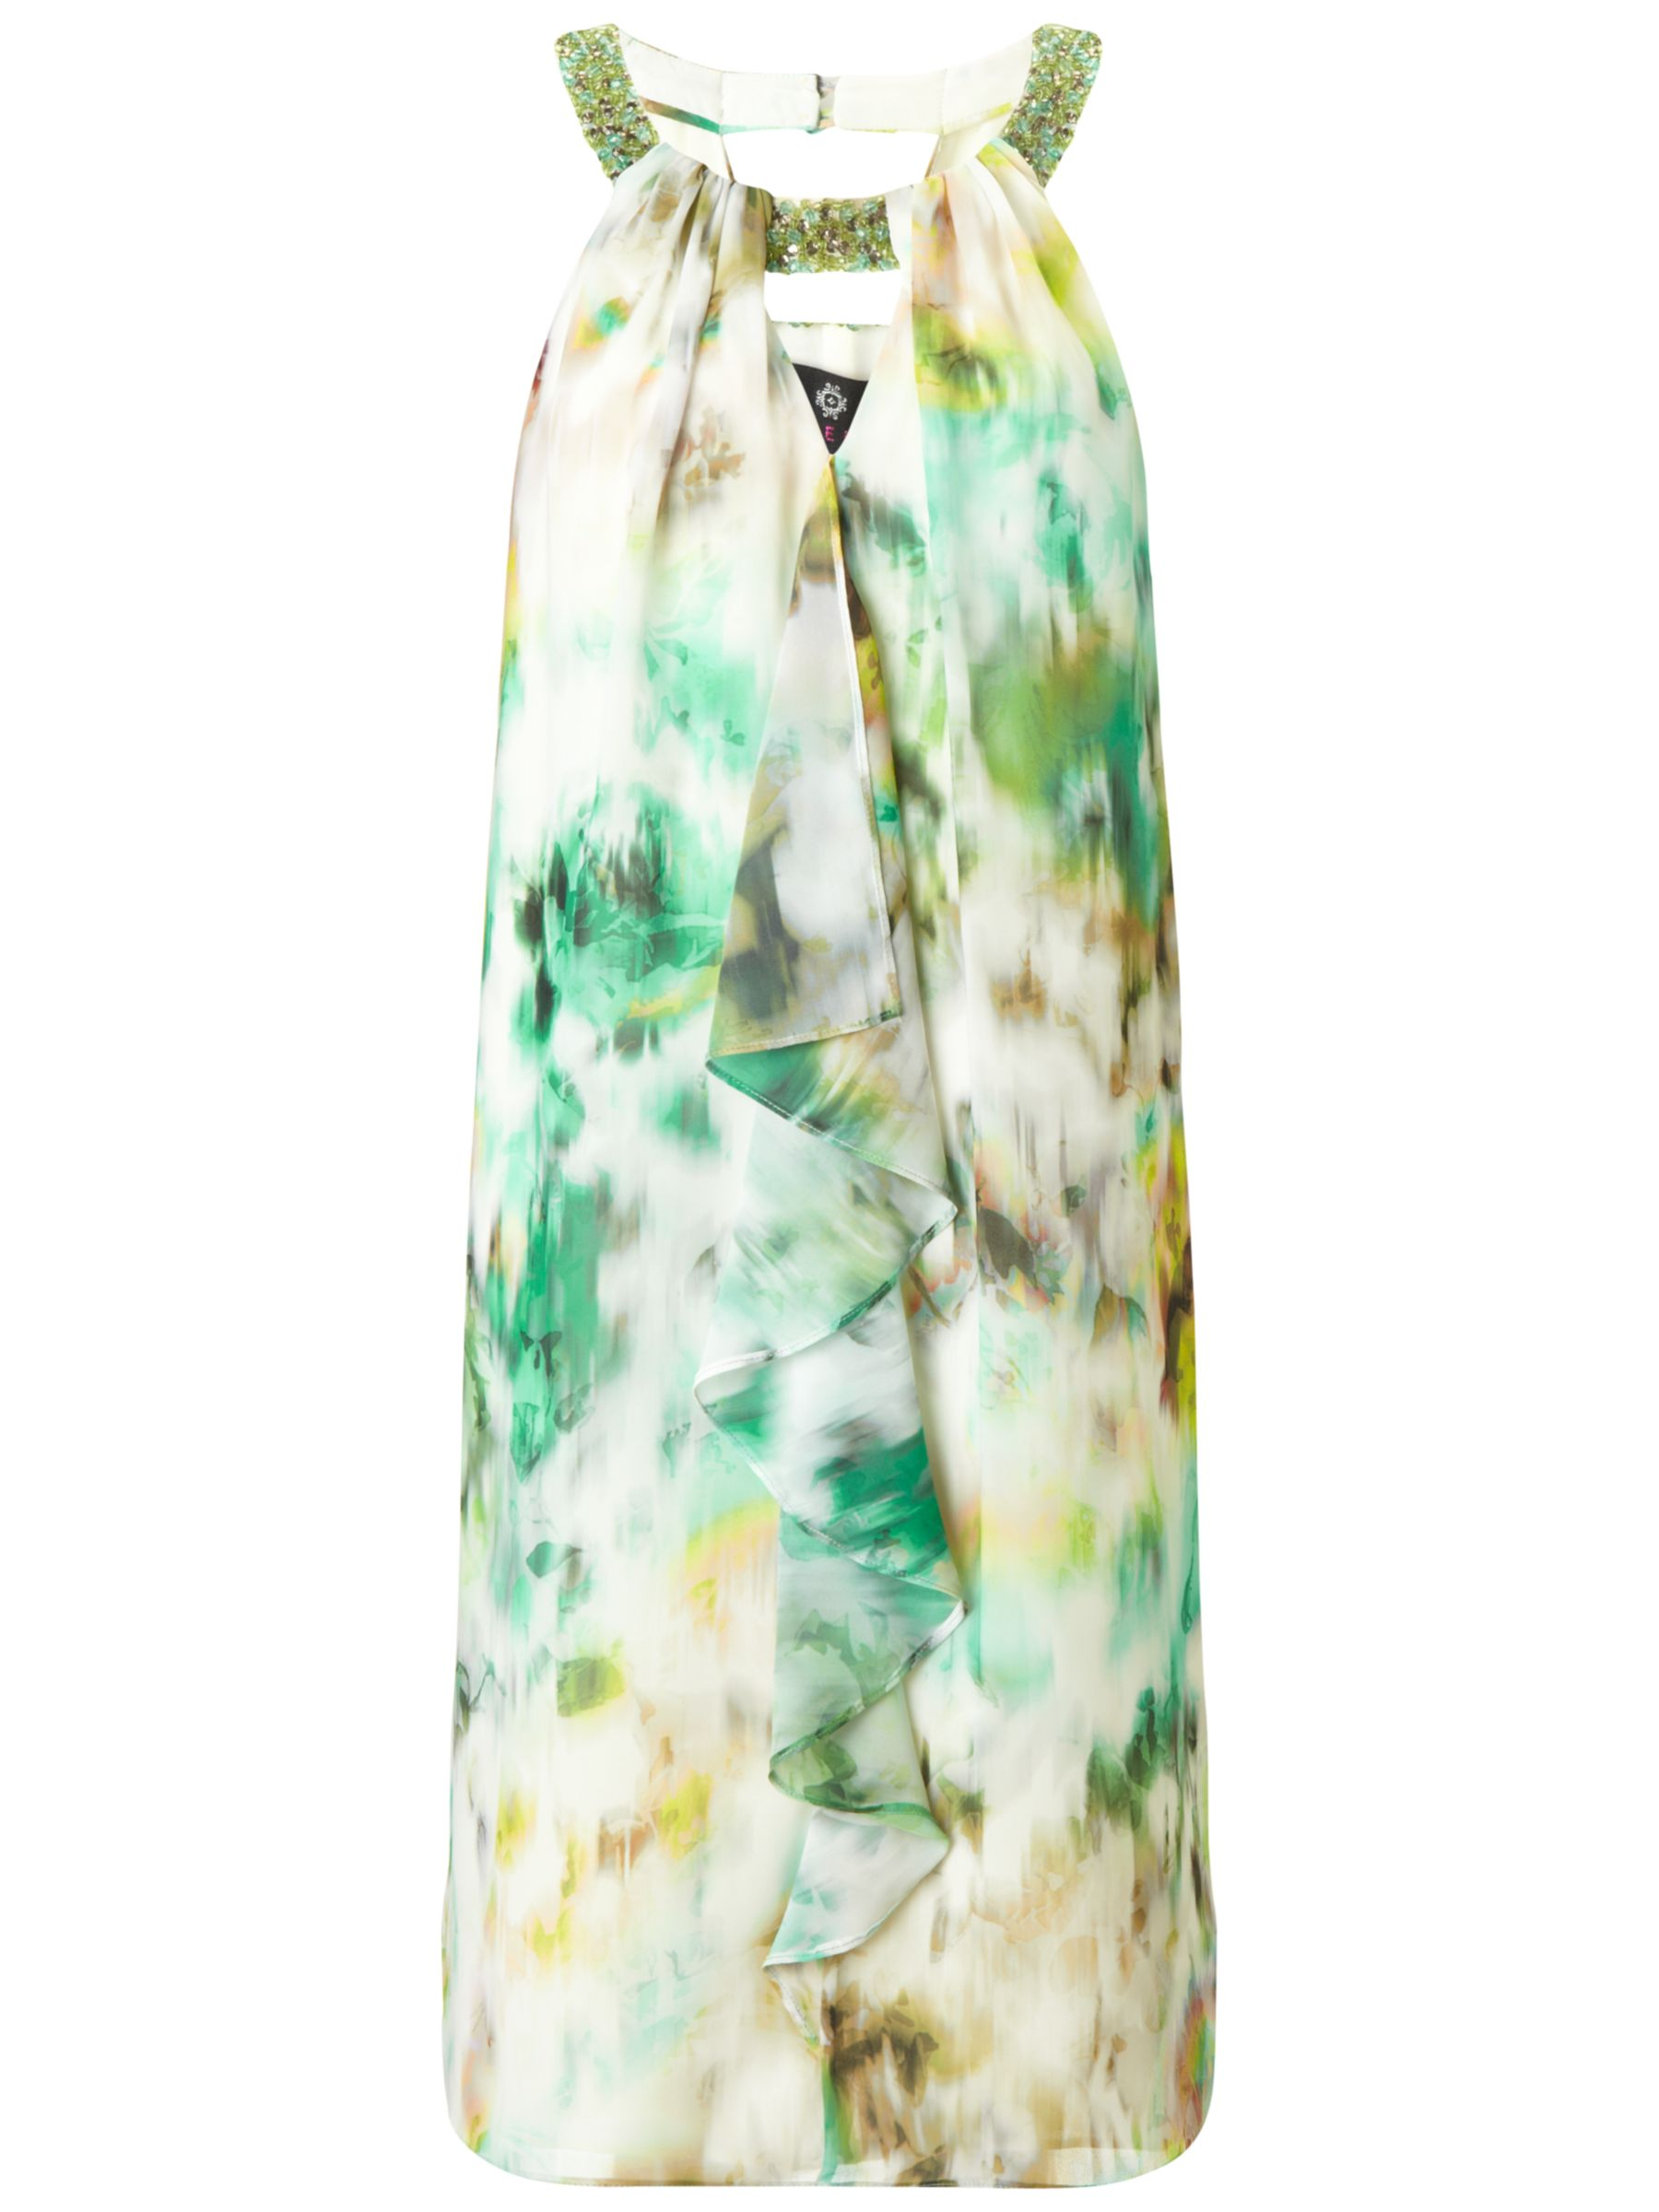 ariella heather frill front dress green/yellow, ariella, heather, frill, front, dress, green/yellow, 8|12|10|16|18|14, women, plus size, womens dresses, gifts, wedding, wedding clothing, female guests, 1857615